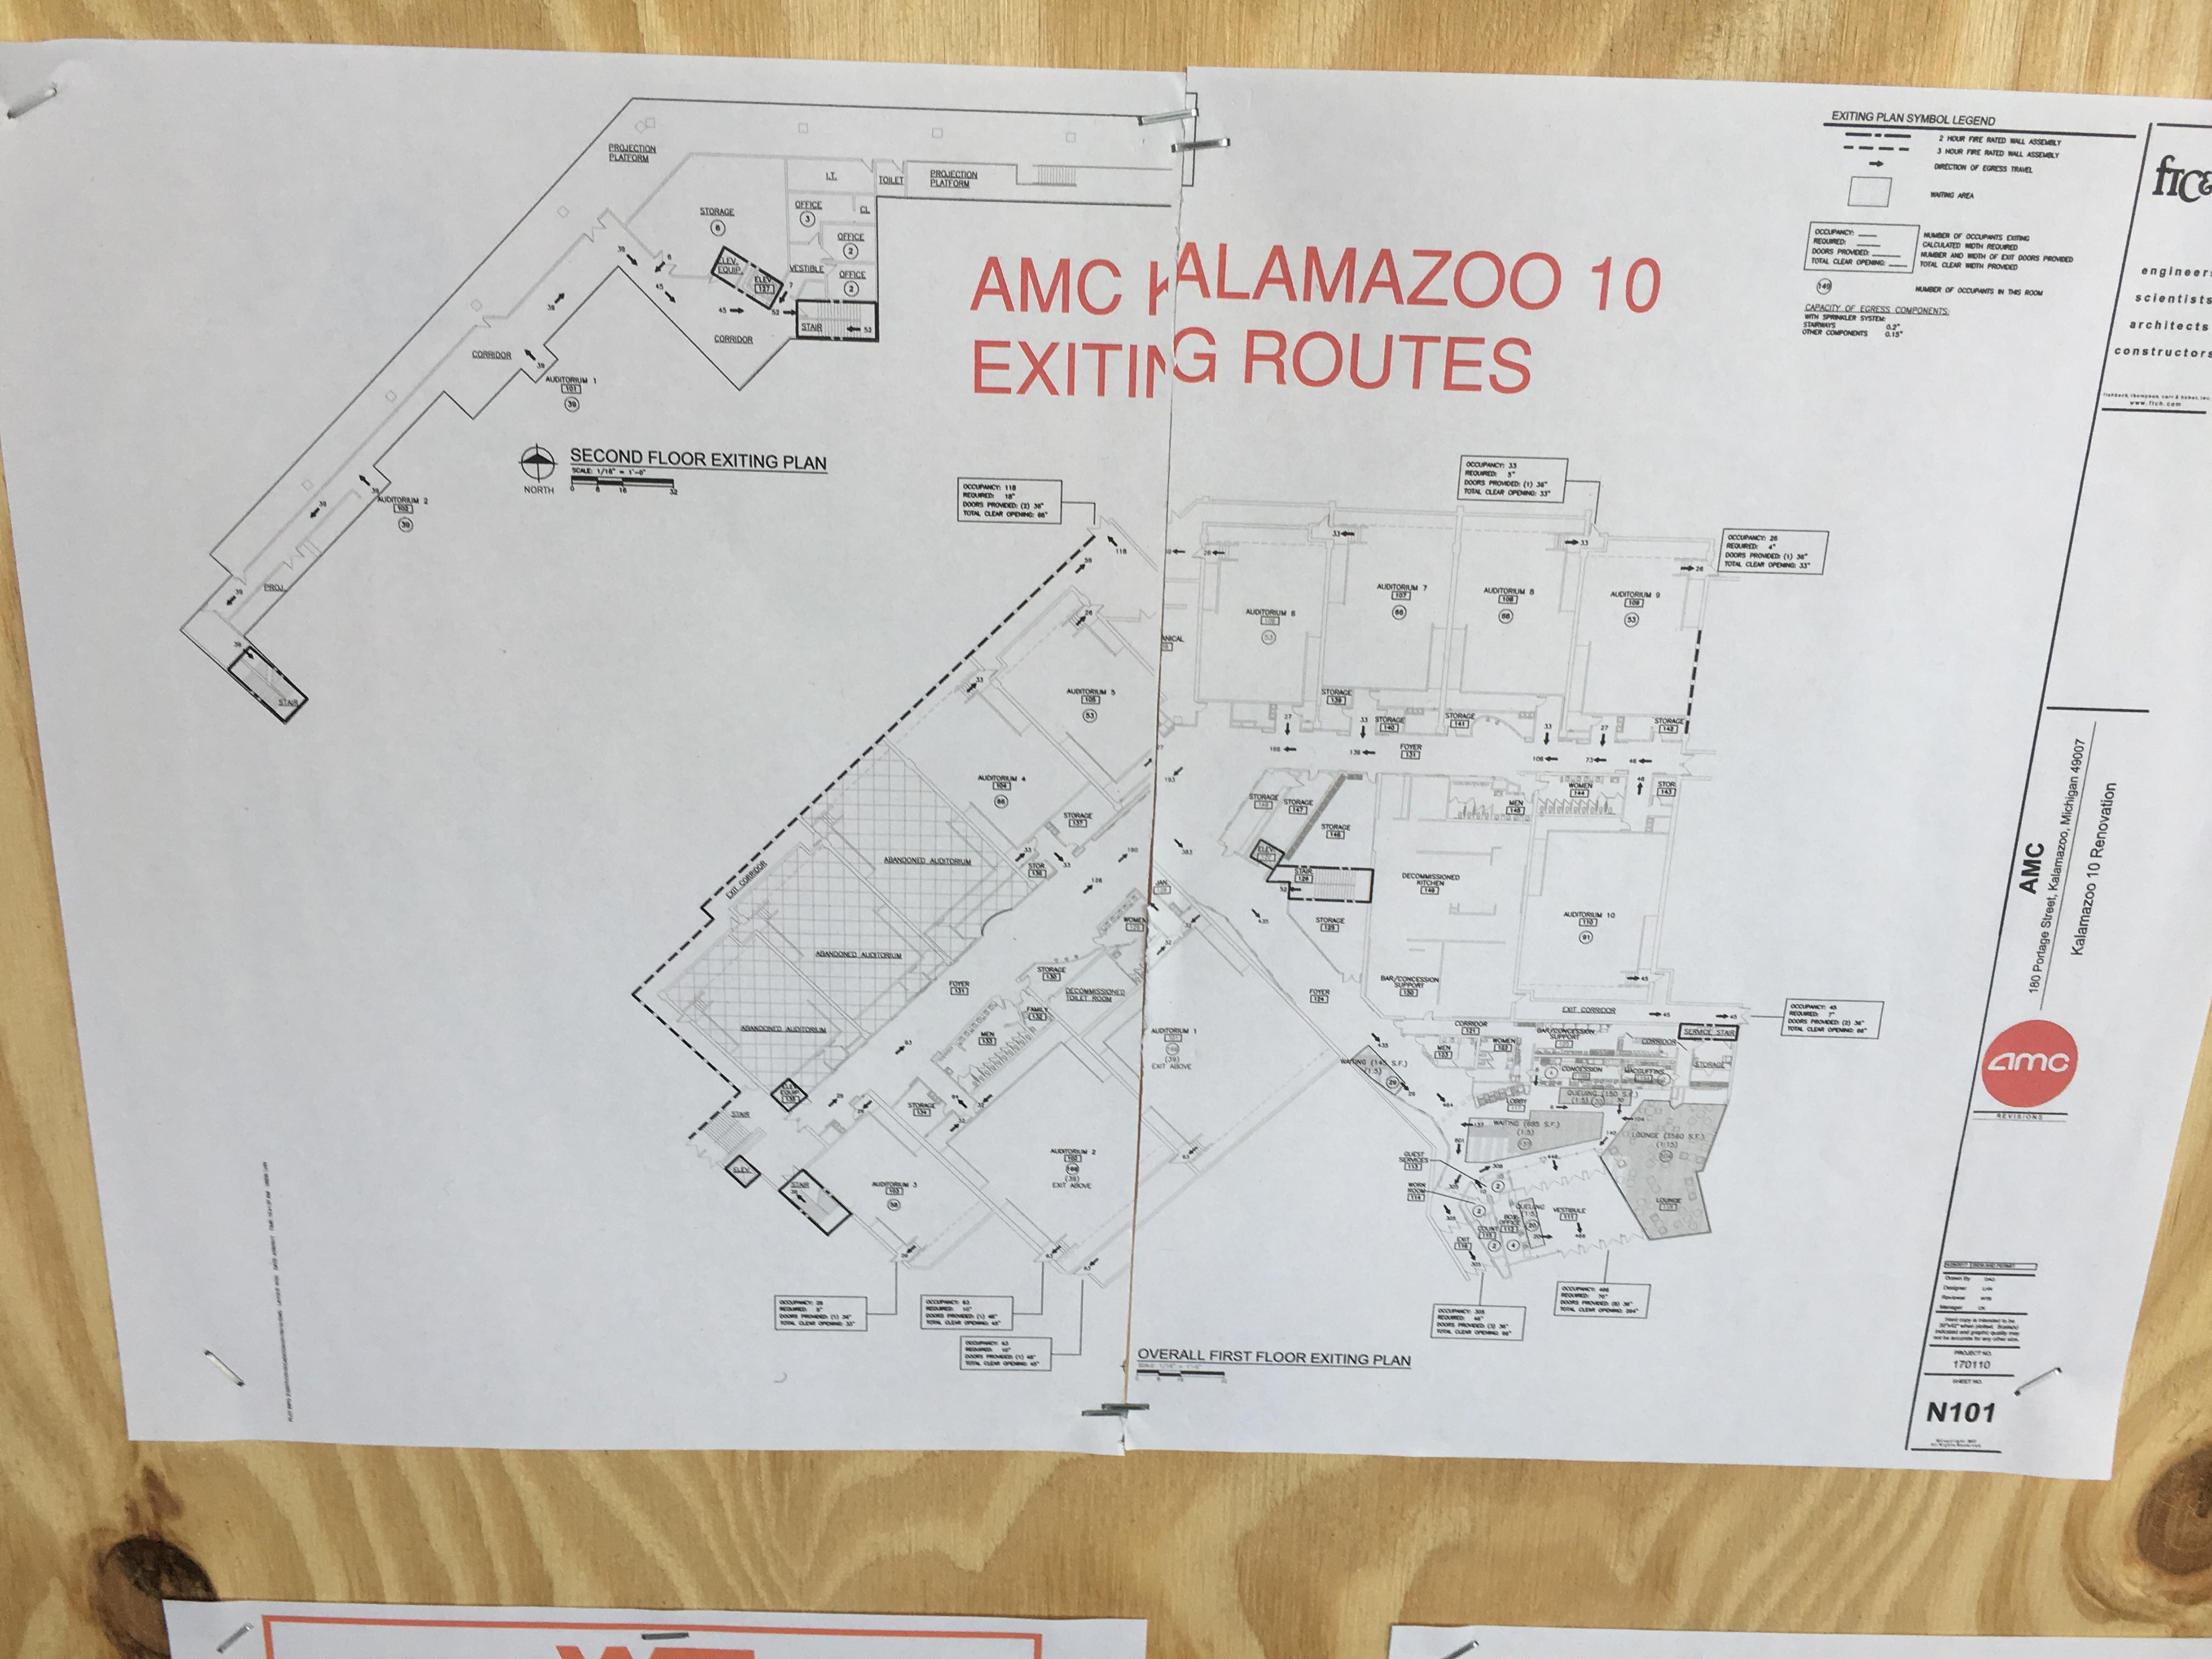 Blueprints for the remodeling of the former Alamo Drafthouse indicate that an AMC Theater will be the building's next occupant. (JASON PUHR/WWMT)